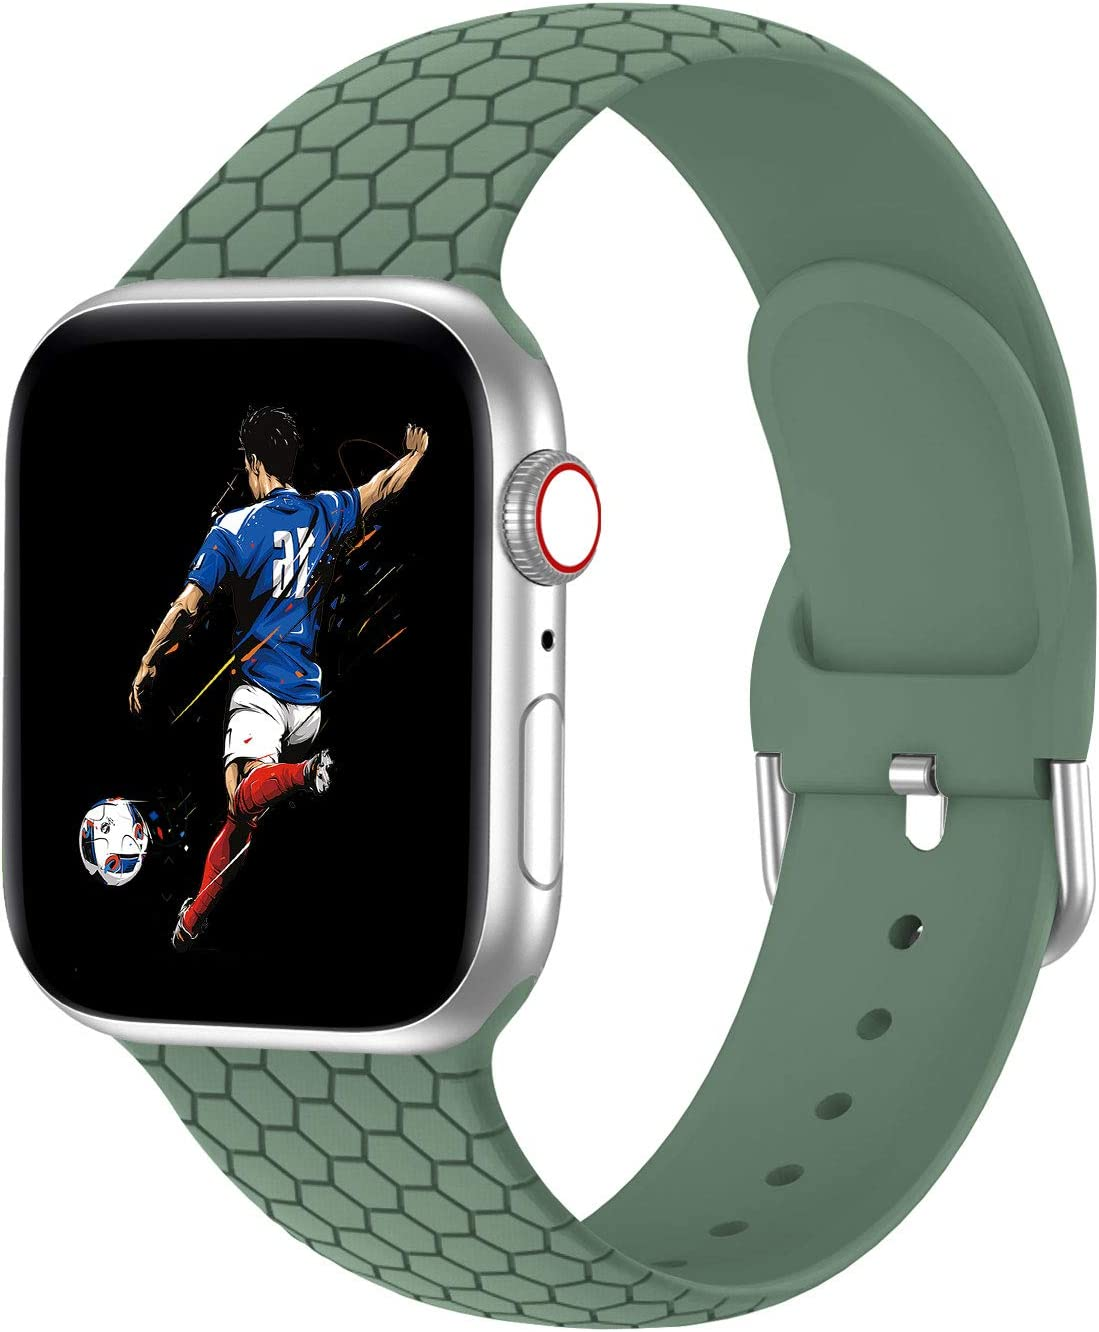 Bandiction Sport Band Compatible with Apple Watch Band 38mm 40mm 42mm 44mm, Soft Breathable Women Men Sport Band Replacement Band Compatible for iWatch Series SE/6/5/4/3/2/1, Pine Green